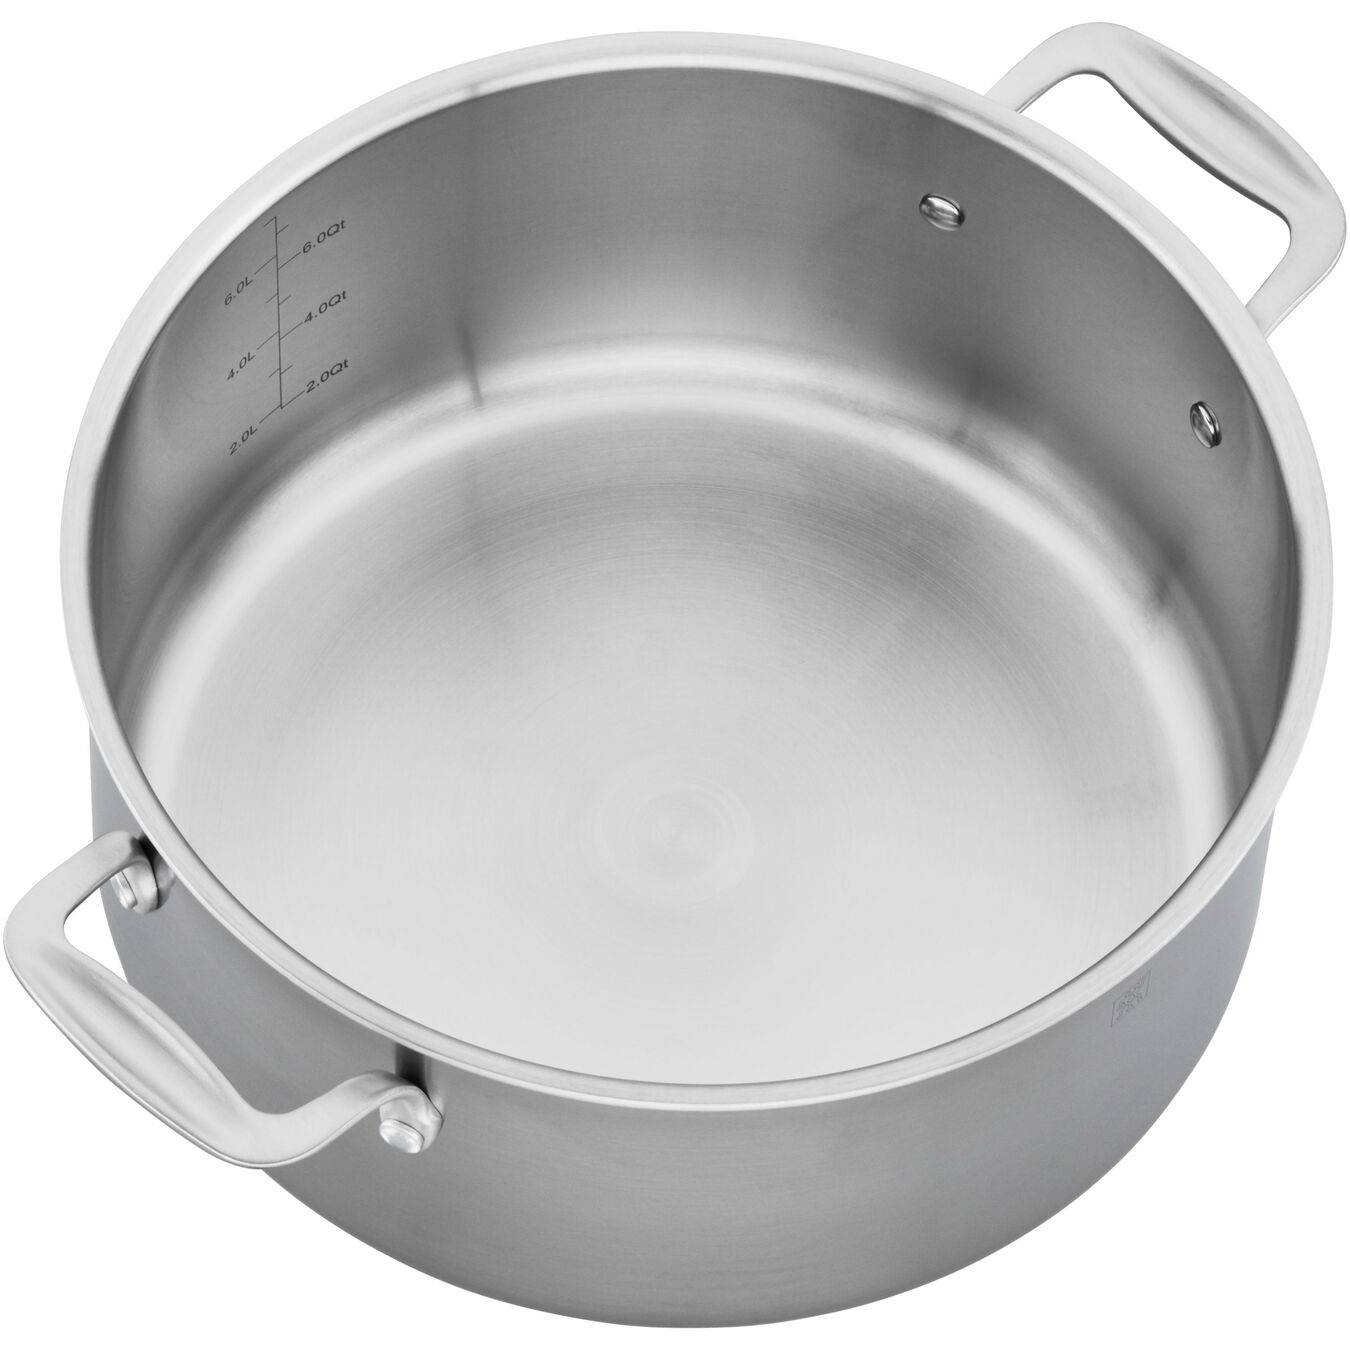 3-ply 8-qt Stainless Steel Stock Pot,,large 3